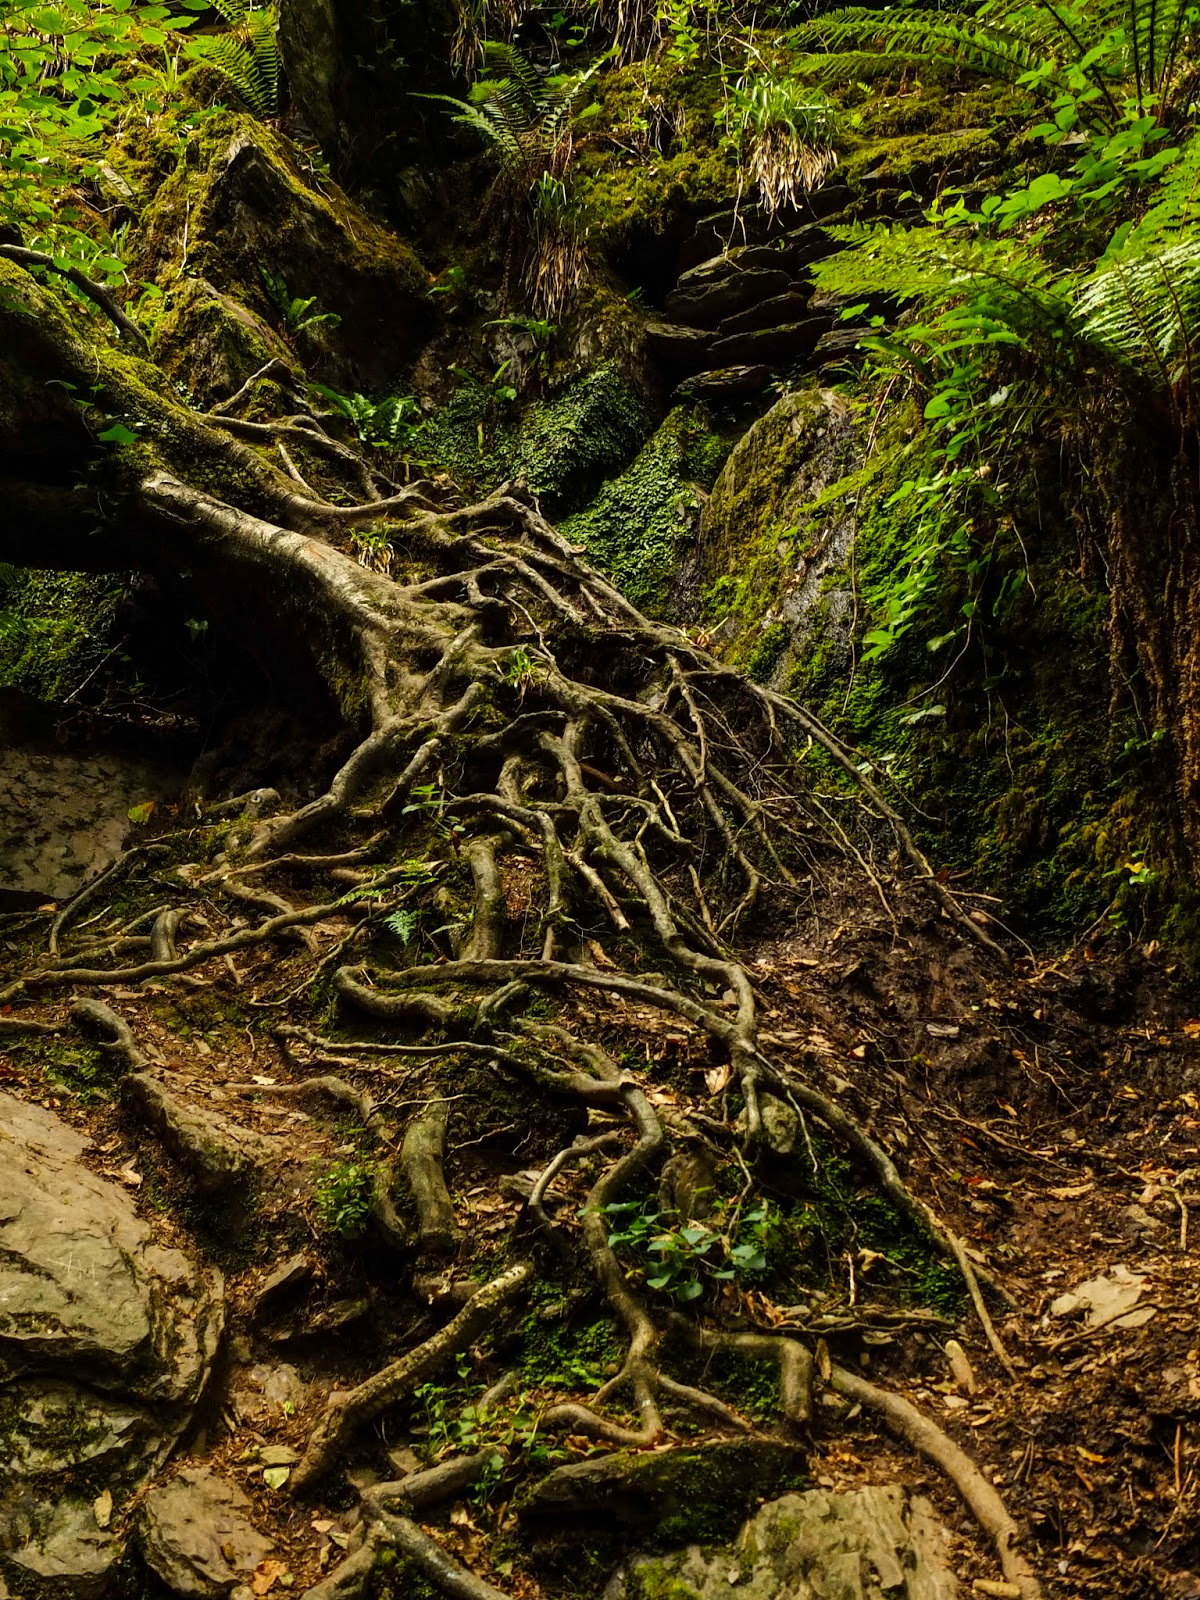 Twisted root ladder in the Mullinhassig Woods, County Cork.